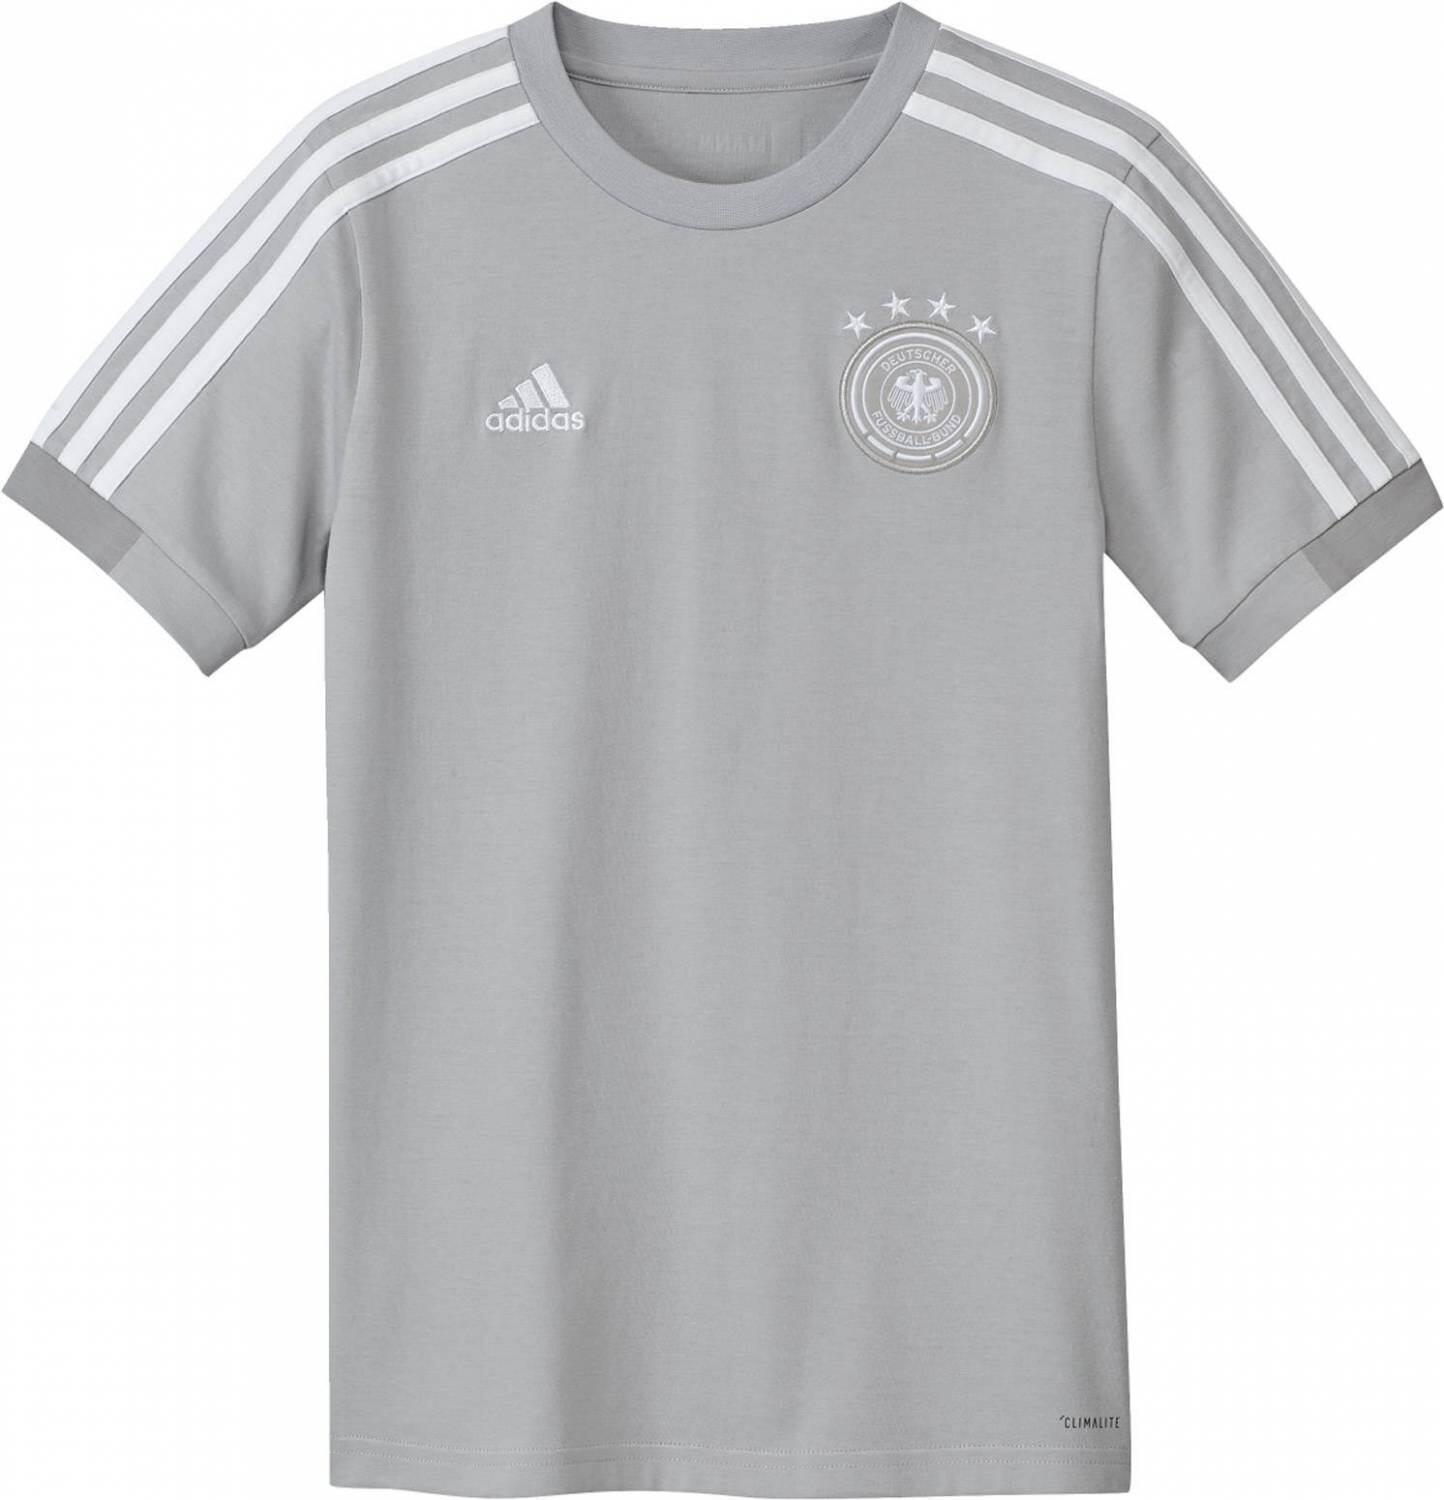 Miniboyssportmode - adidas DFB Trainings Tee Youth Trikot Kids (Größe 116, grey two f17 mgh solid grey white) - Onlineshop Sportolino